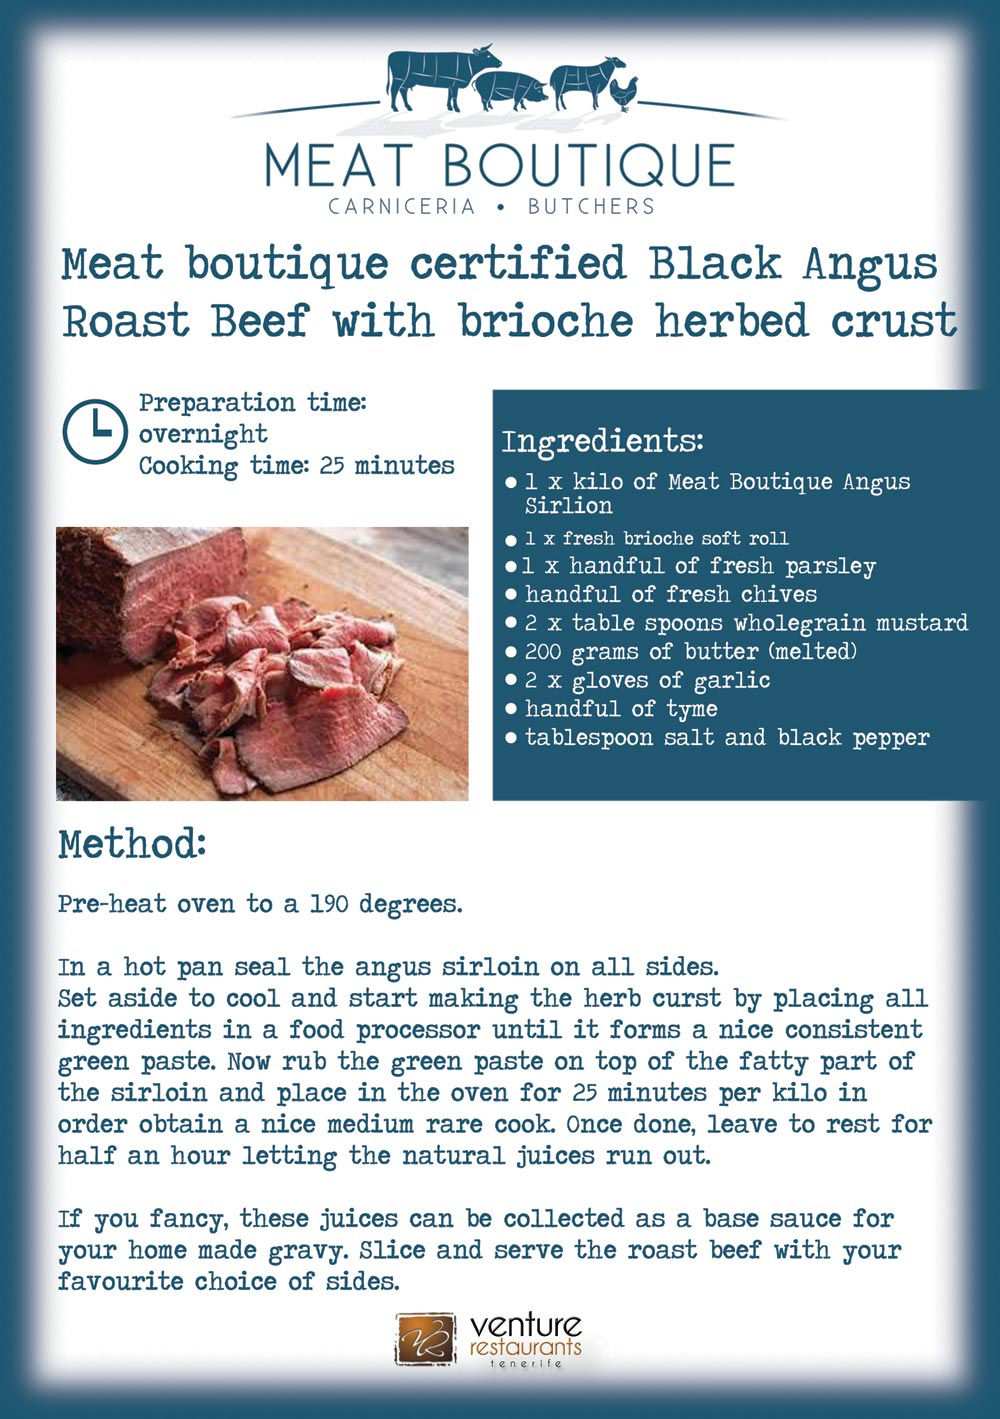 Meat Boutique Certified Black Angus